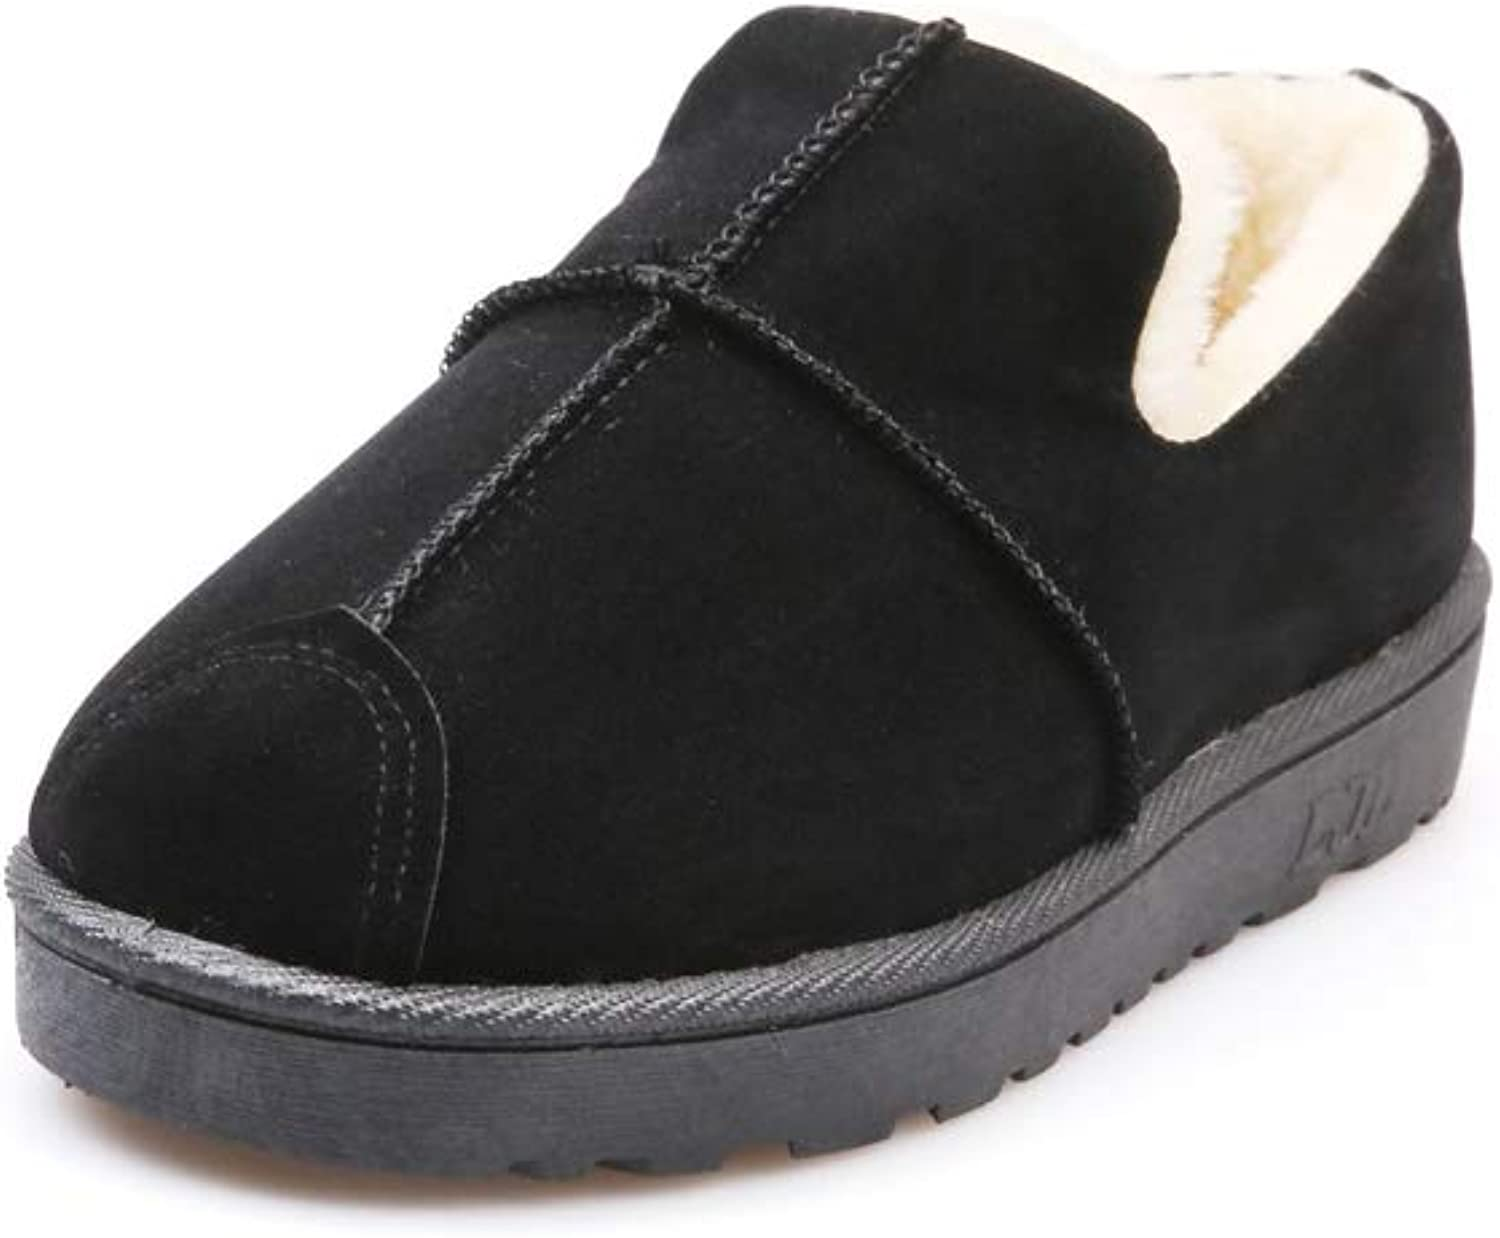 A-LING Women's Fur Slipper Casual Winter Flat Indoor&Outdoor Loafers